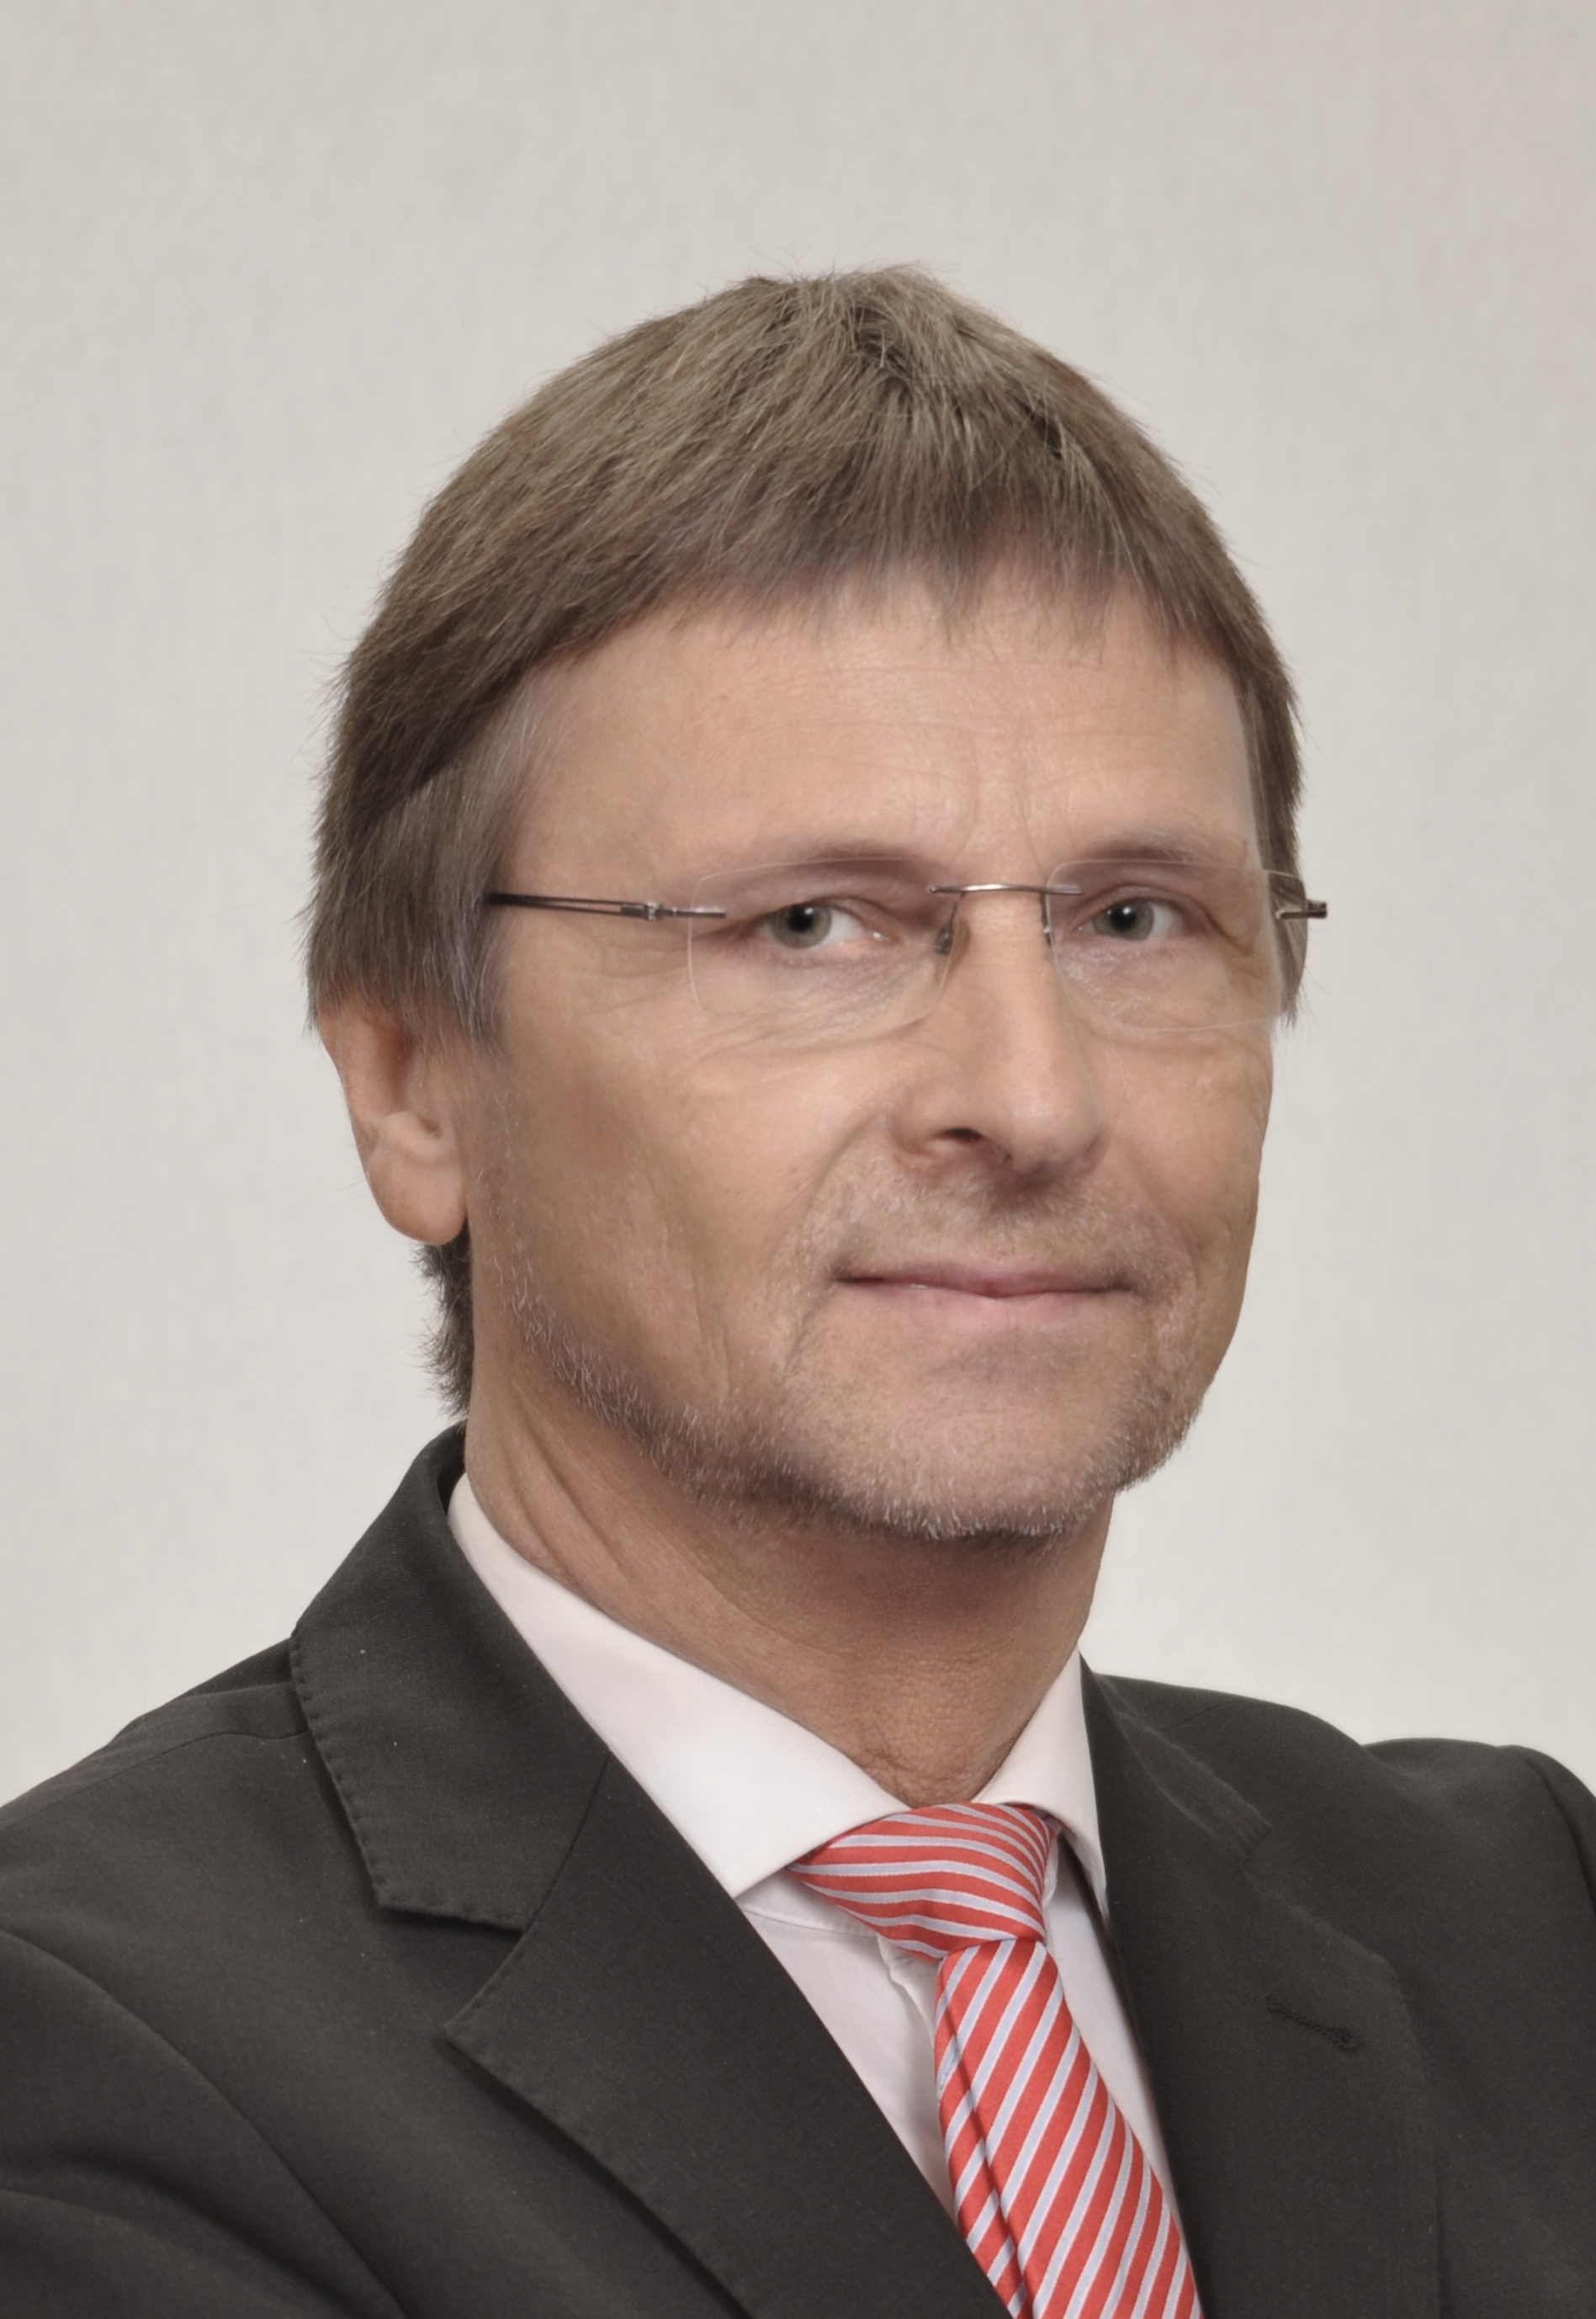 Günther Mertz – Managing Director, Association of Air Conditioning and Ventilation in Buildings (FGK)